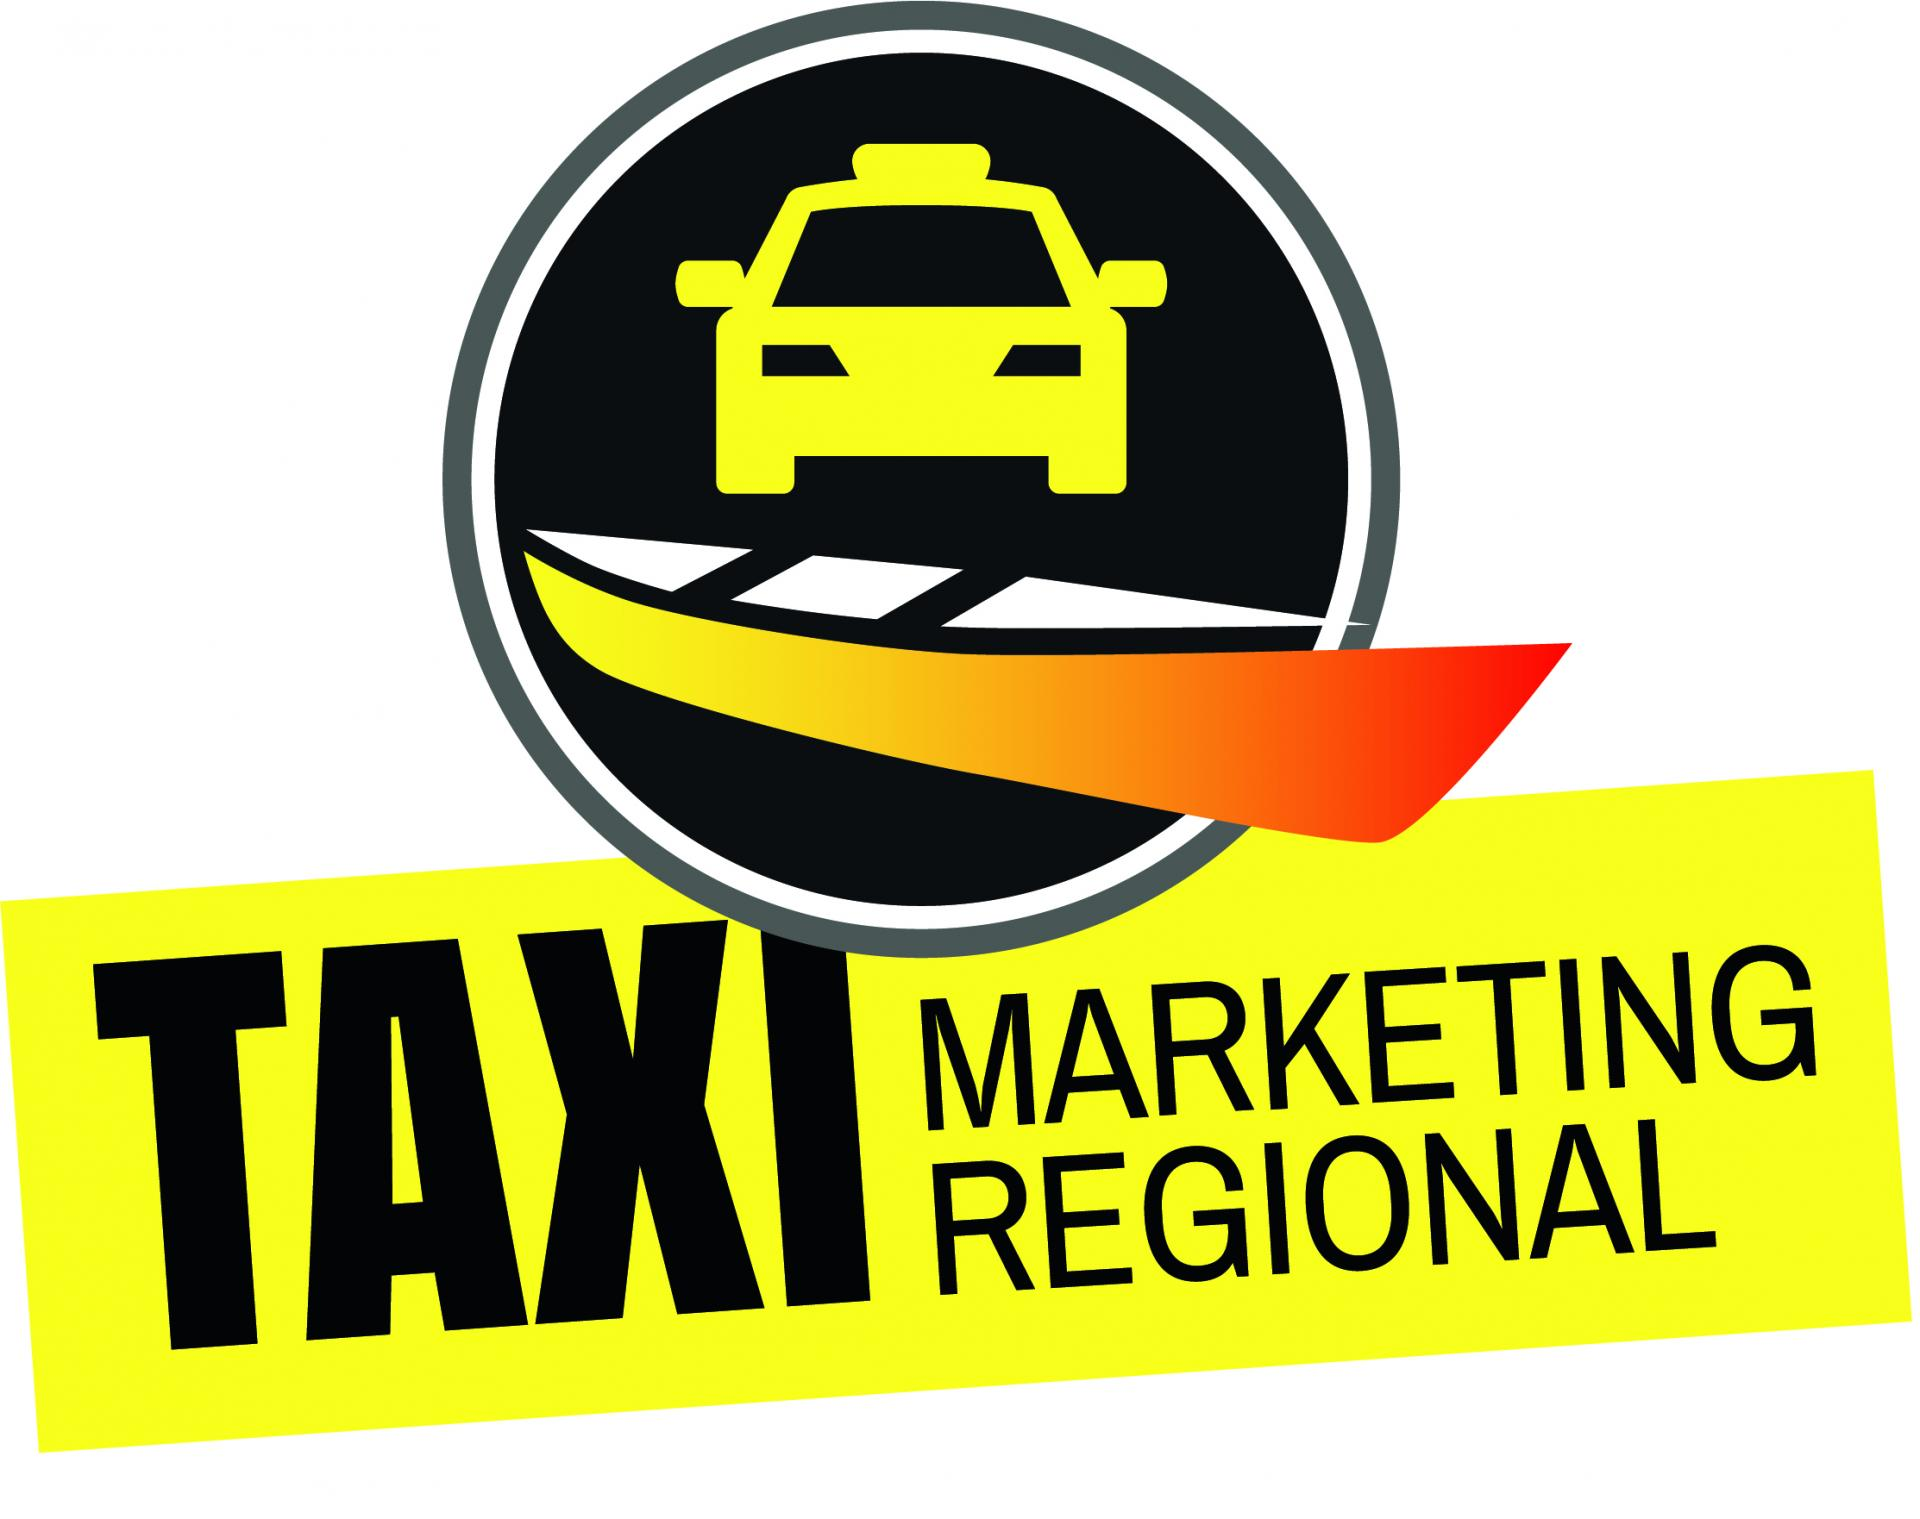 TAXI MARKETING REGIONAL